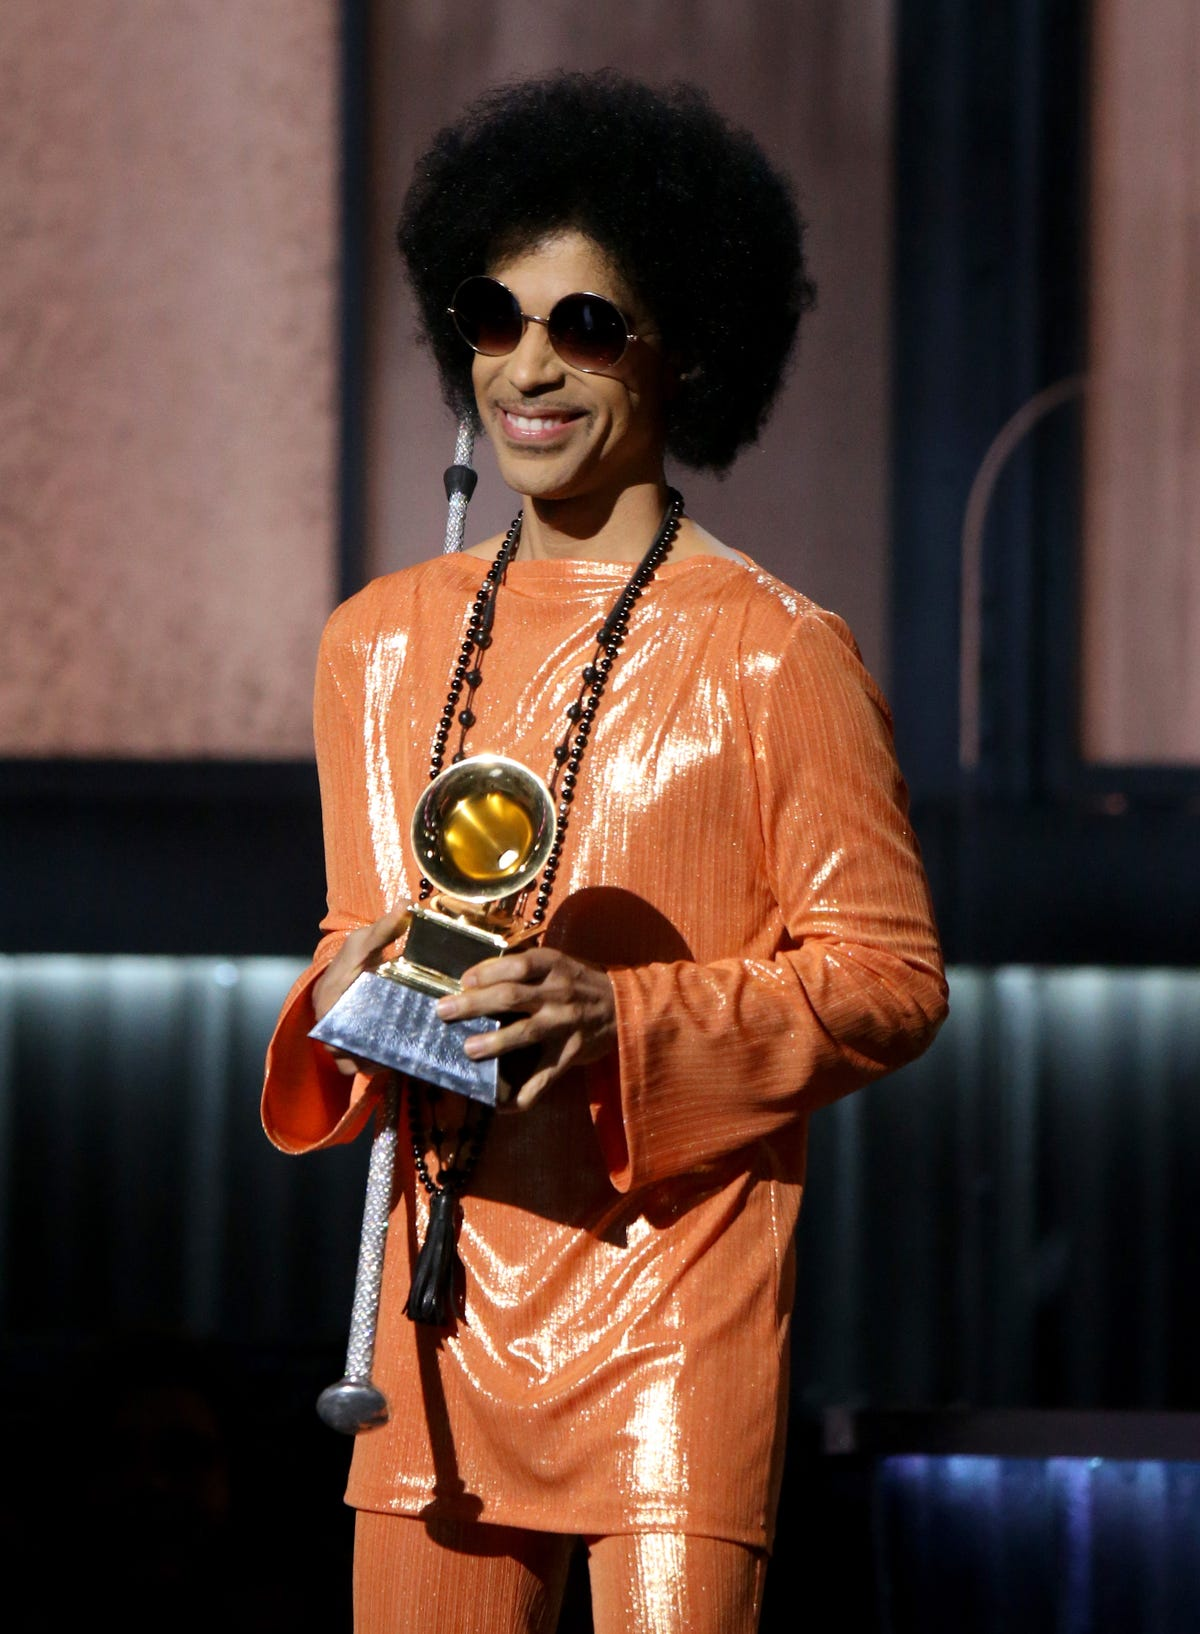 Prince died from 'exceedingly high' amount of fentanyl, experts say